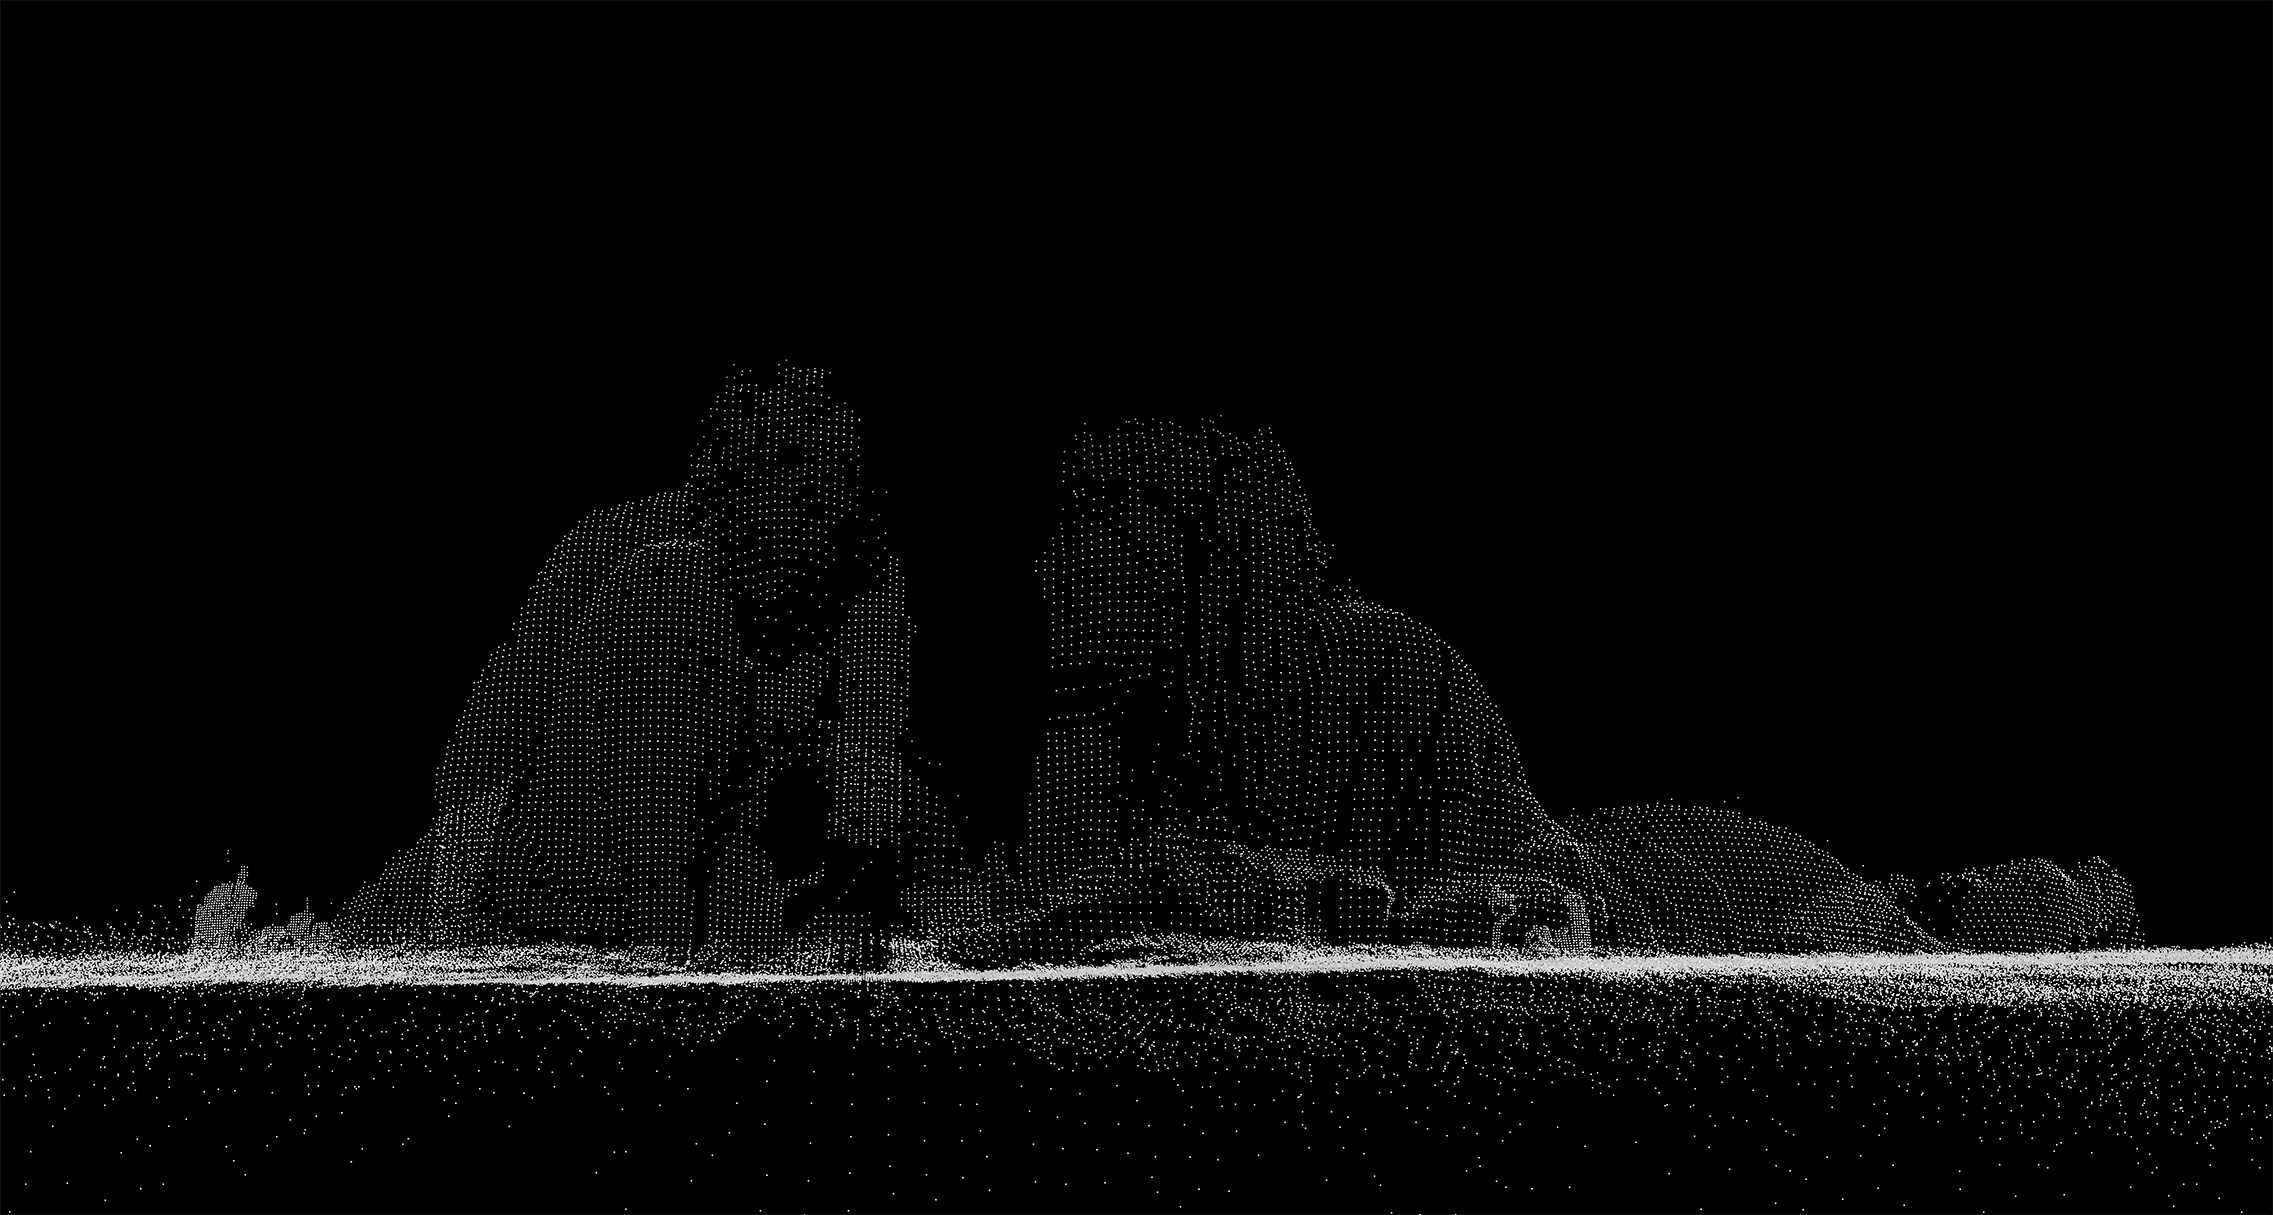 mynd-workshop-central-park-couple17-3D-laser-scanning-point-cloud-new-york.jpg